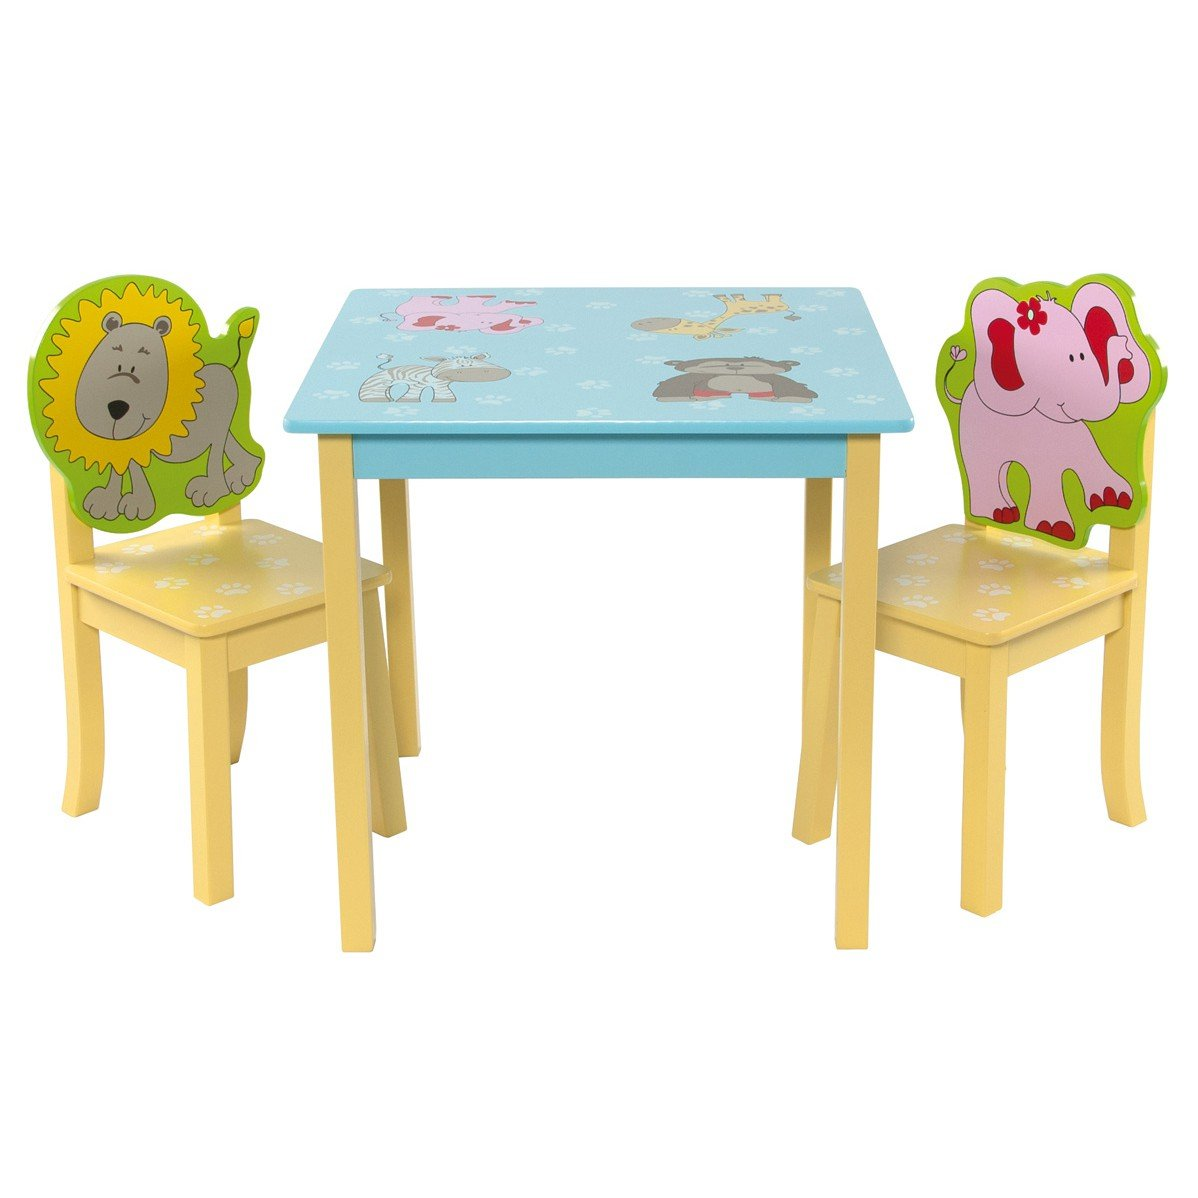 Kids table and chair set animals | 1 table with 2 chairs | children's furniture set Liberty House Toys LHT W010